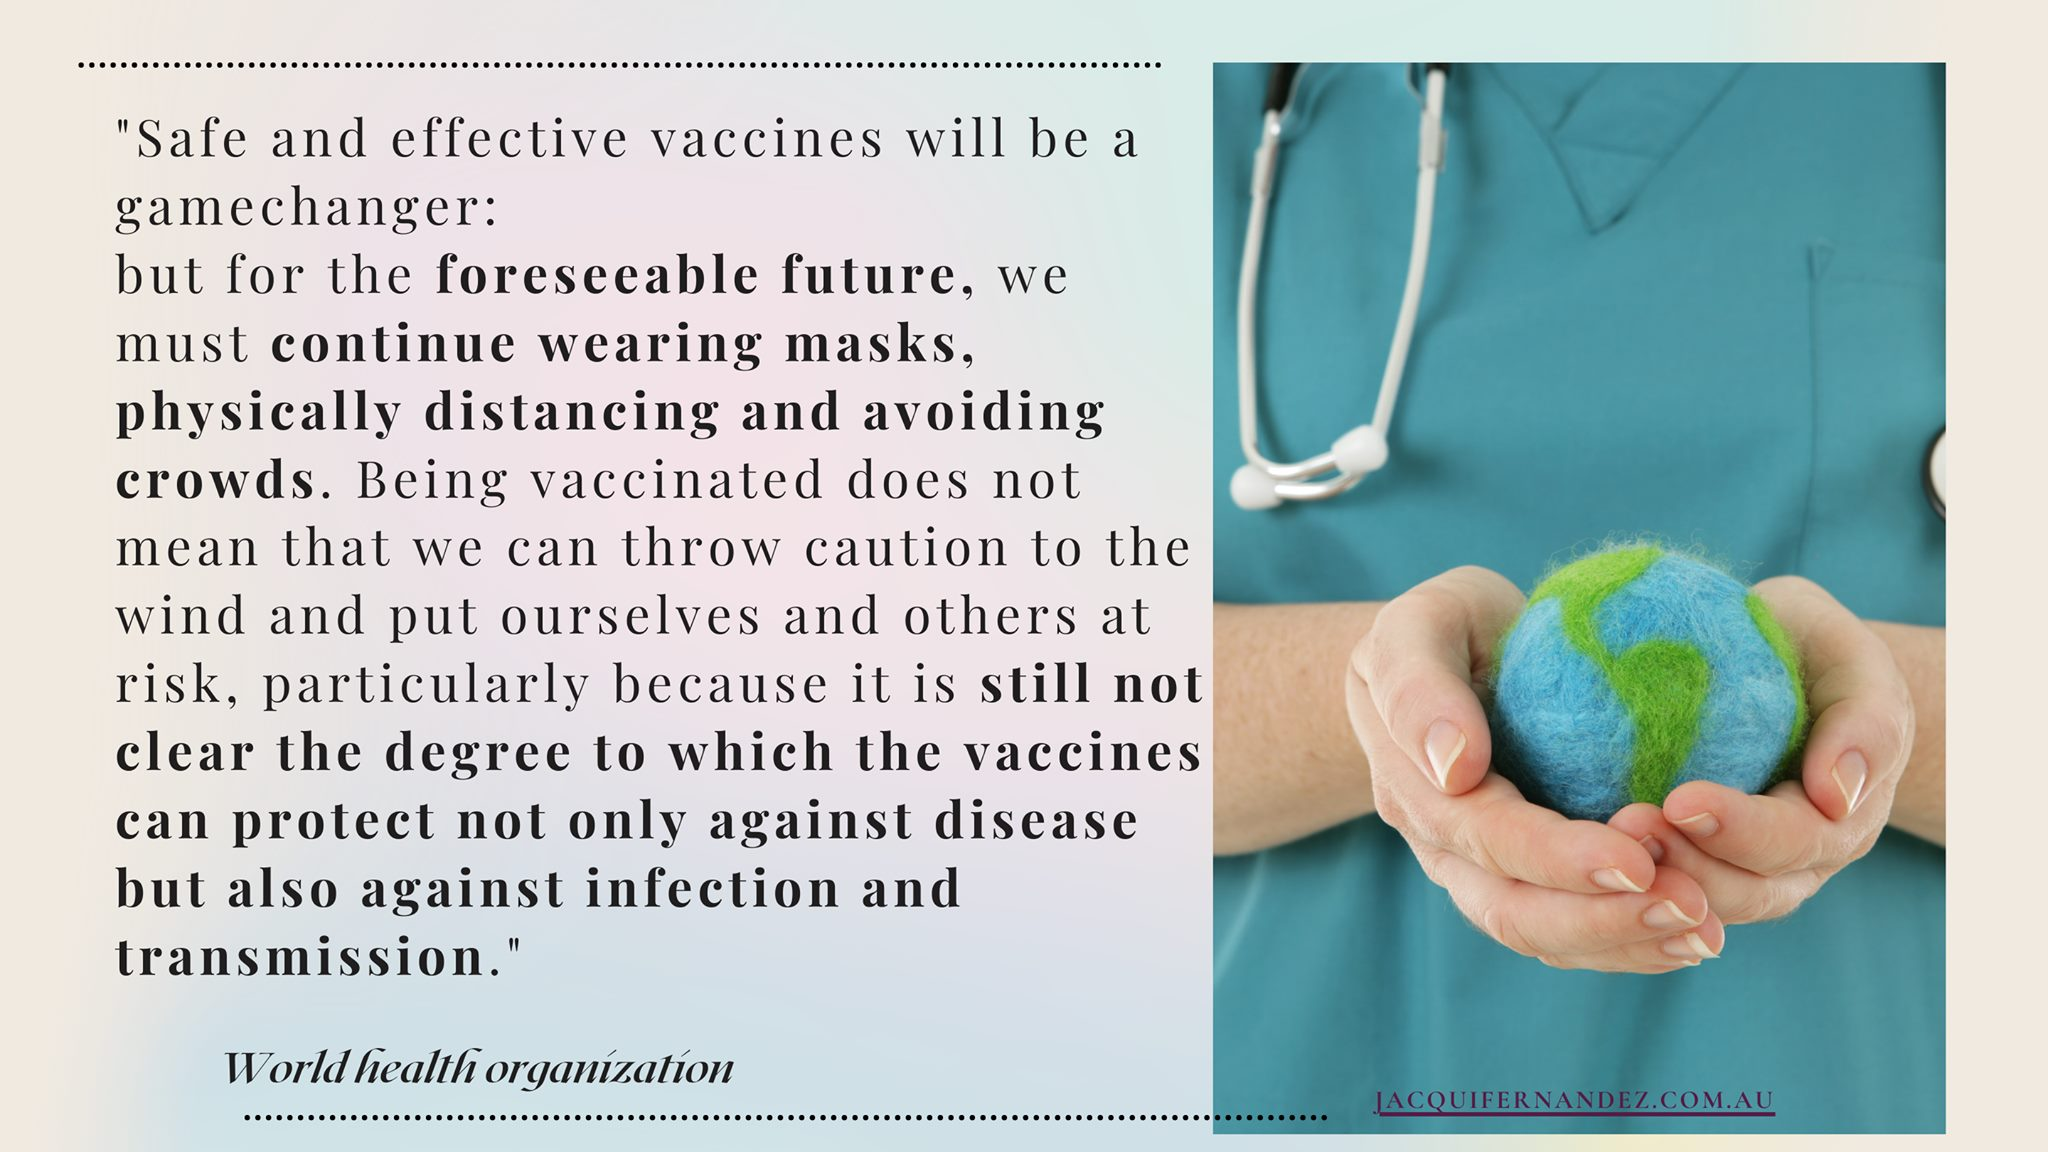 Safe and effective vaccines will be a gamechanger